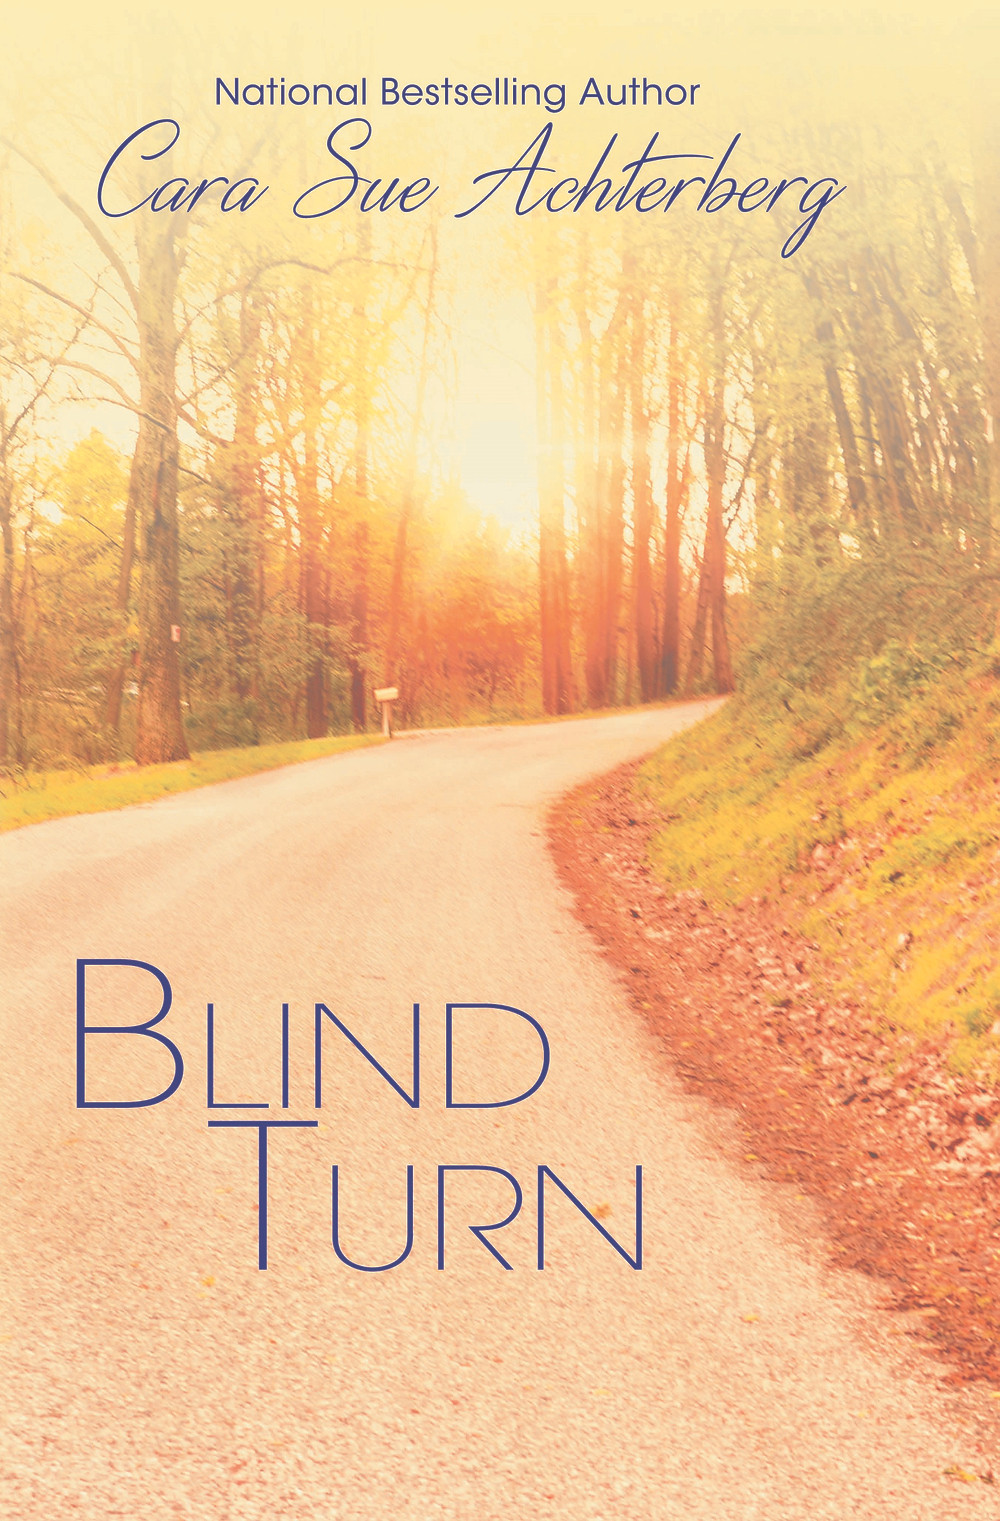 BLIND TURN by Cara Sue Achterberg